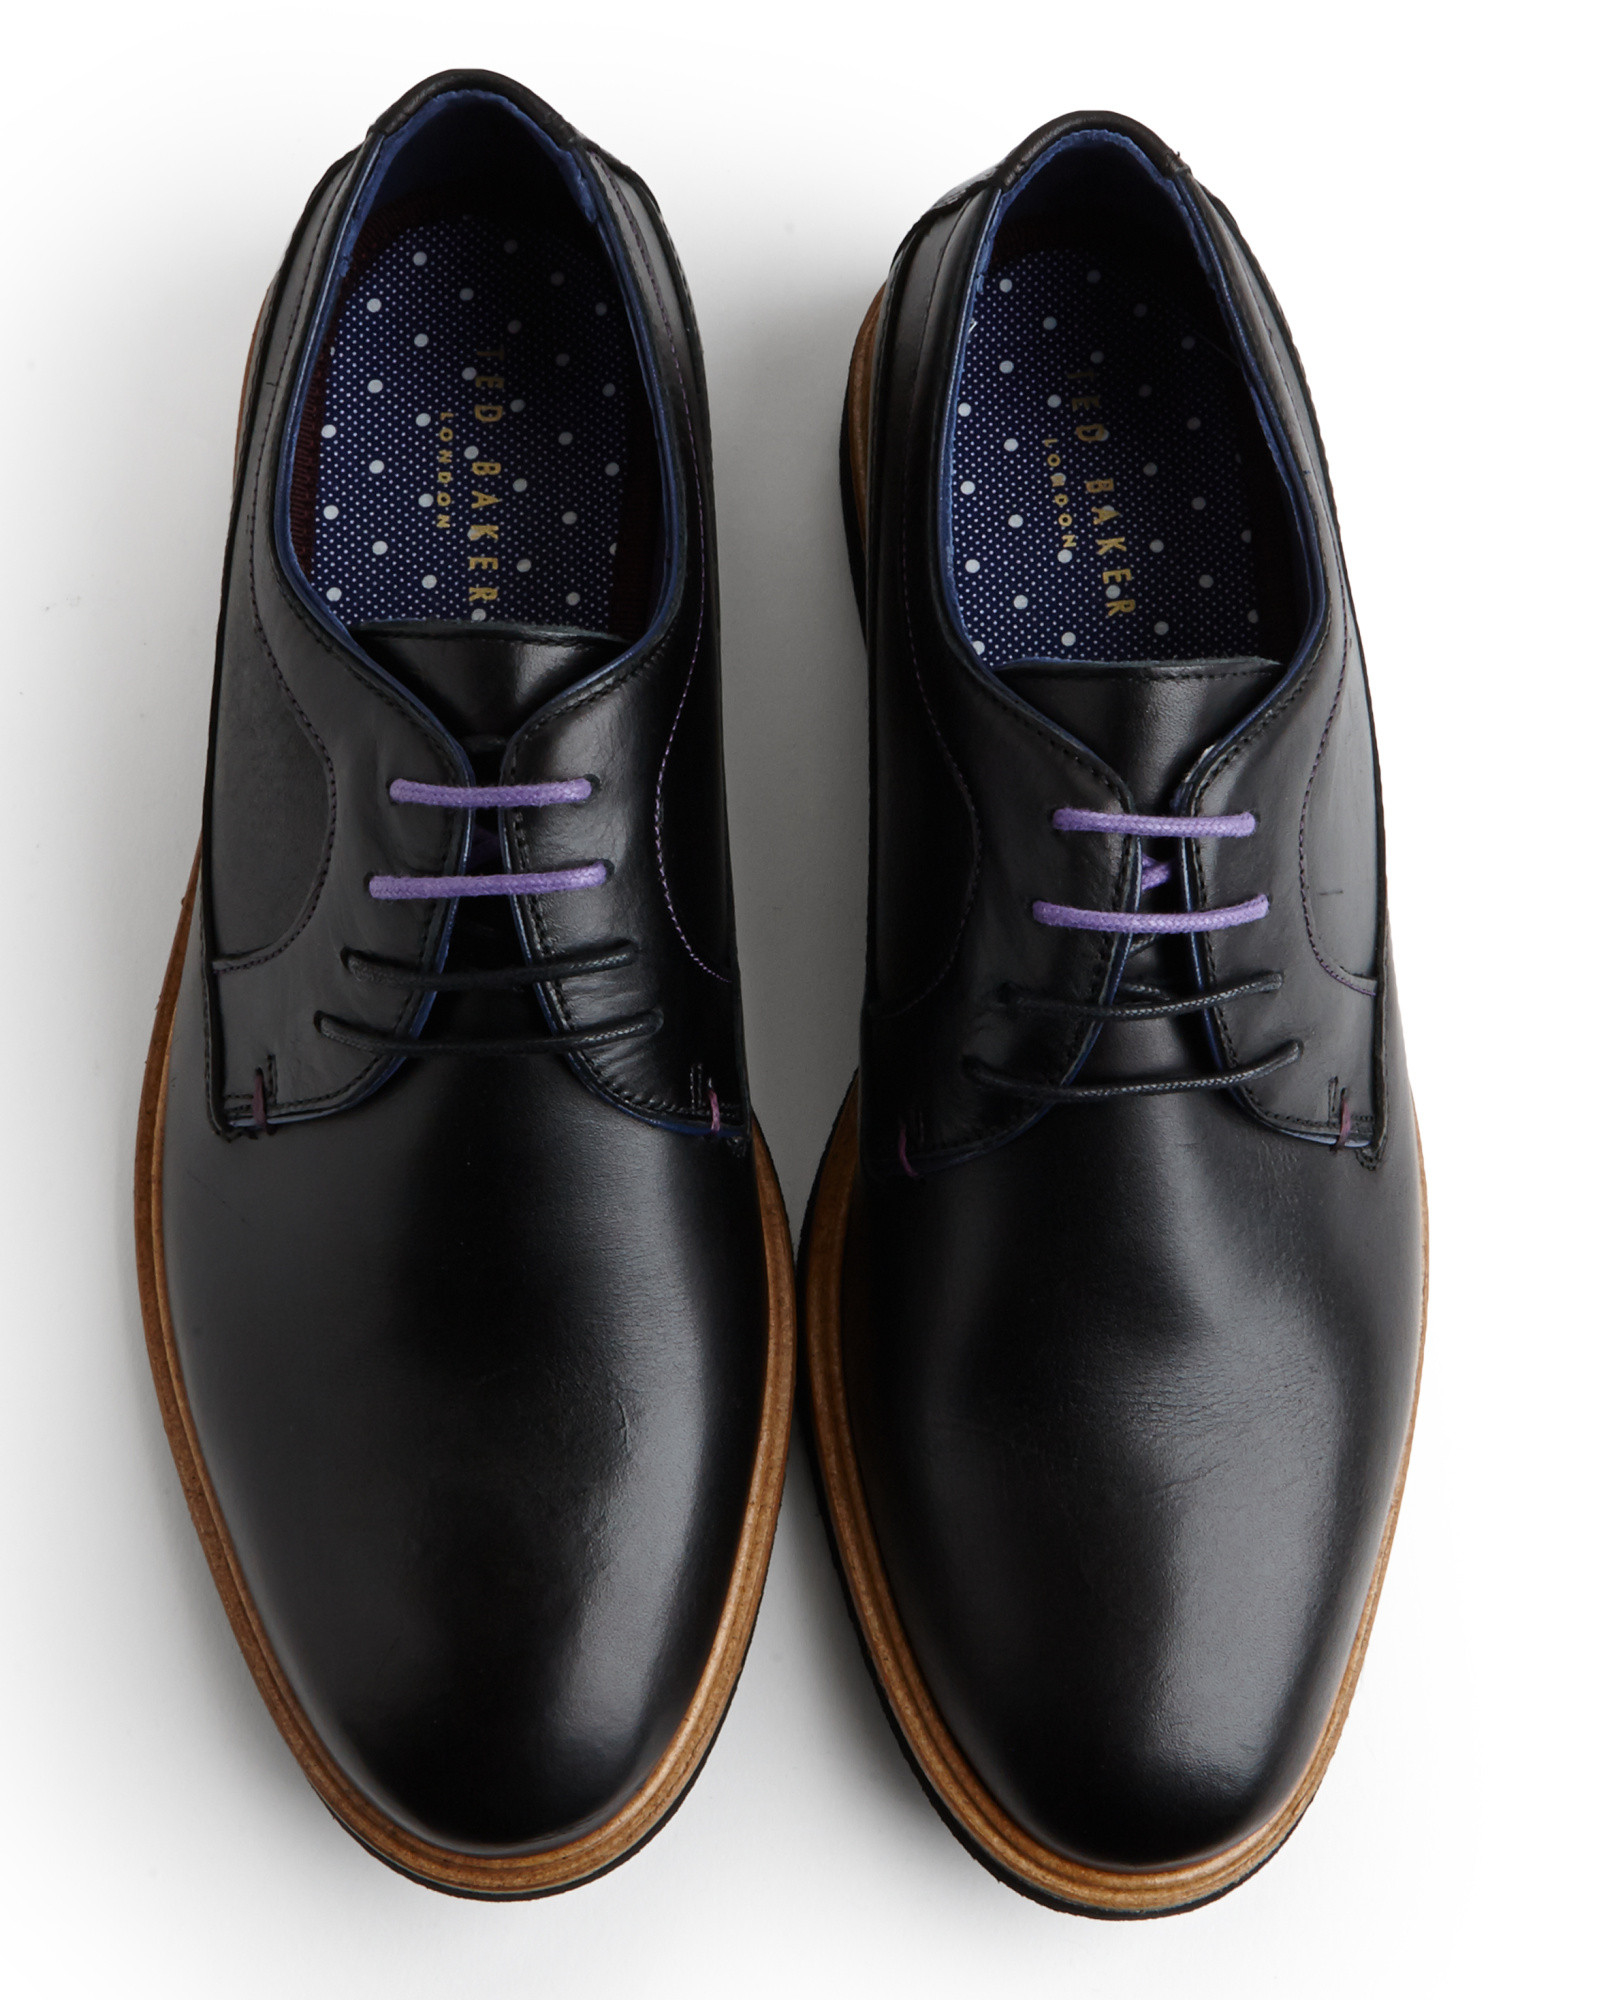 Mens Stylish Black Derby Shoes